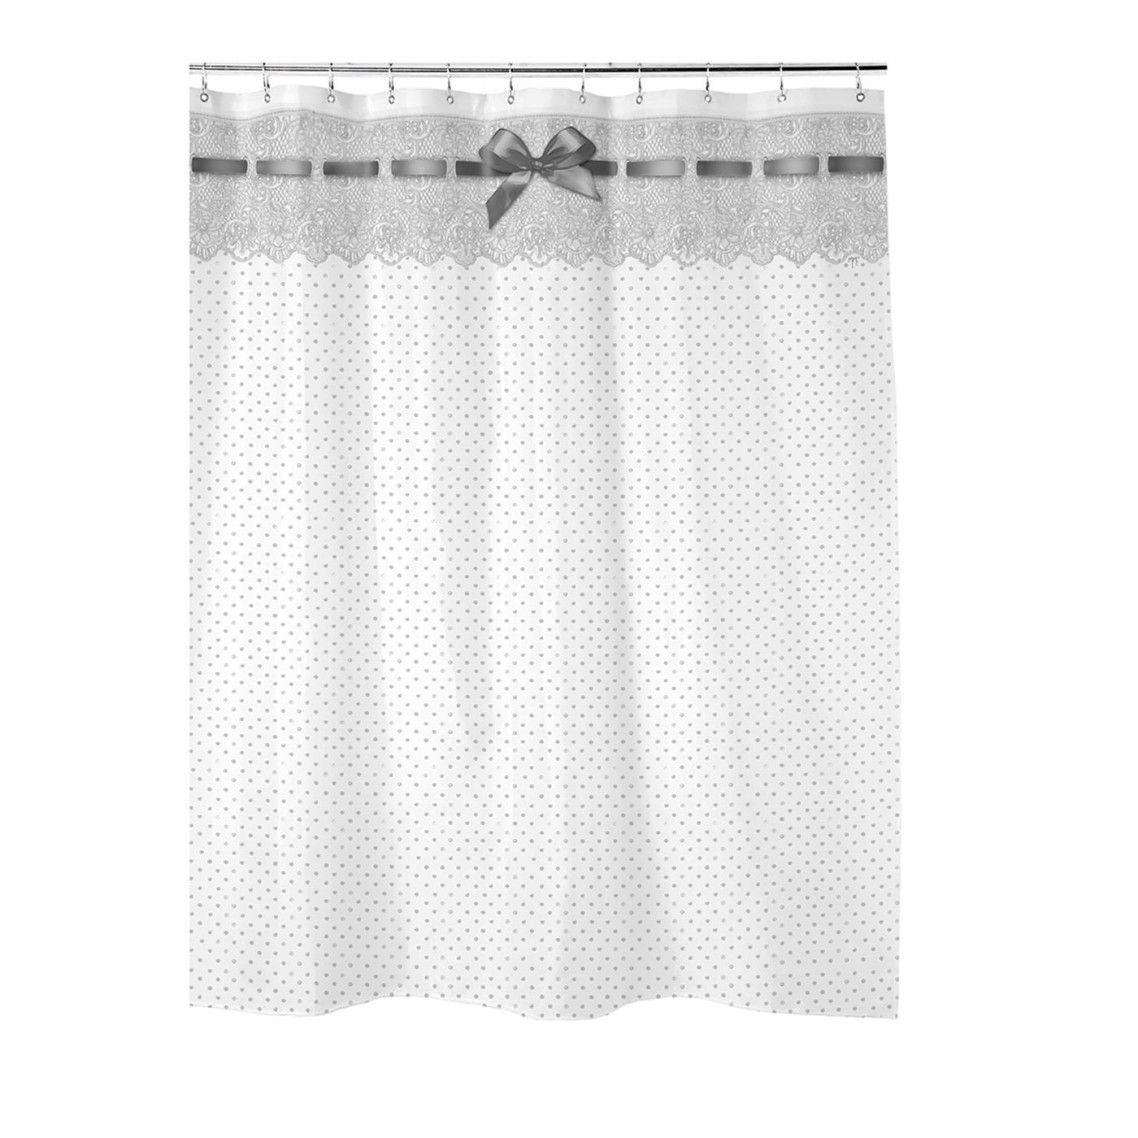 Awesome Shabby Chic Bathroom Shower Curtain Decor With Polka Dot Pattern As  Well As Most Popular